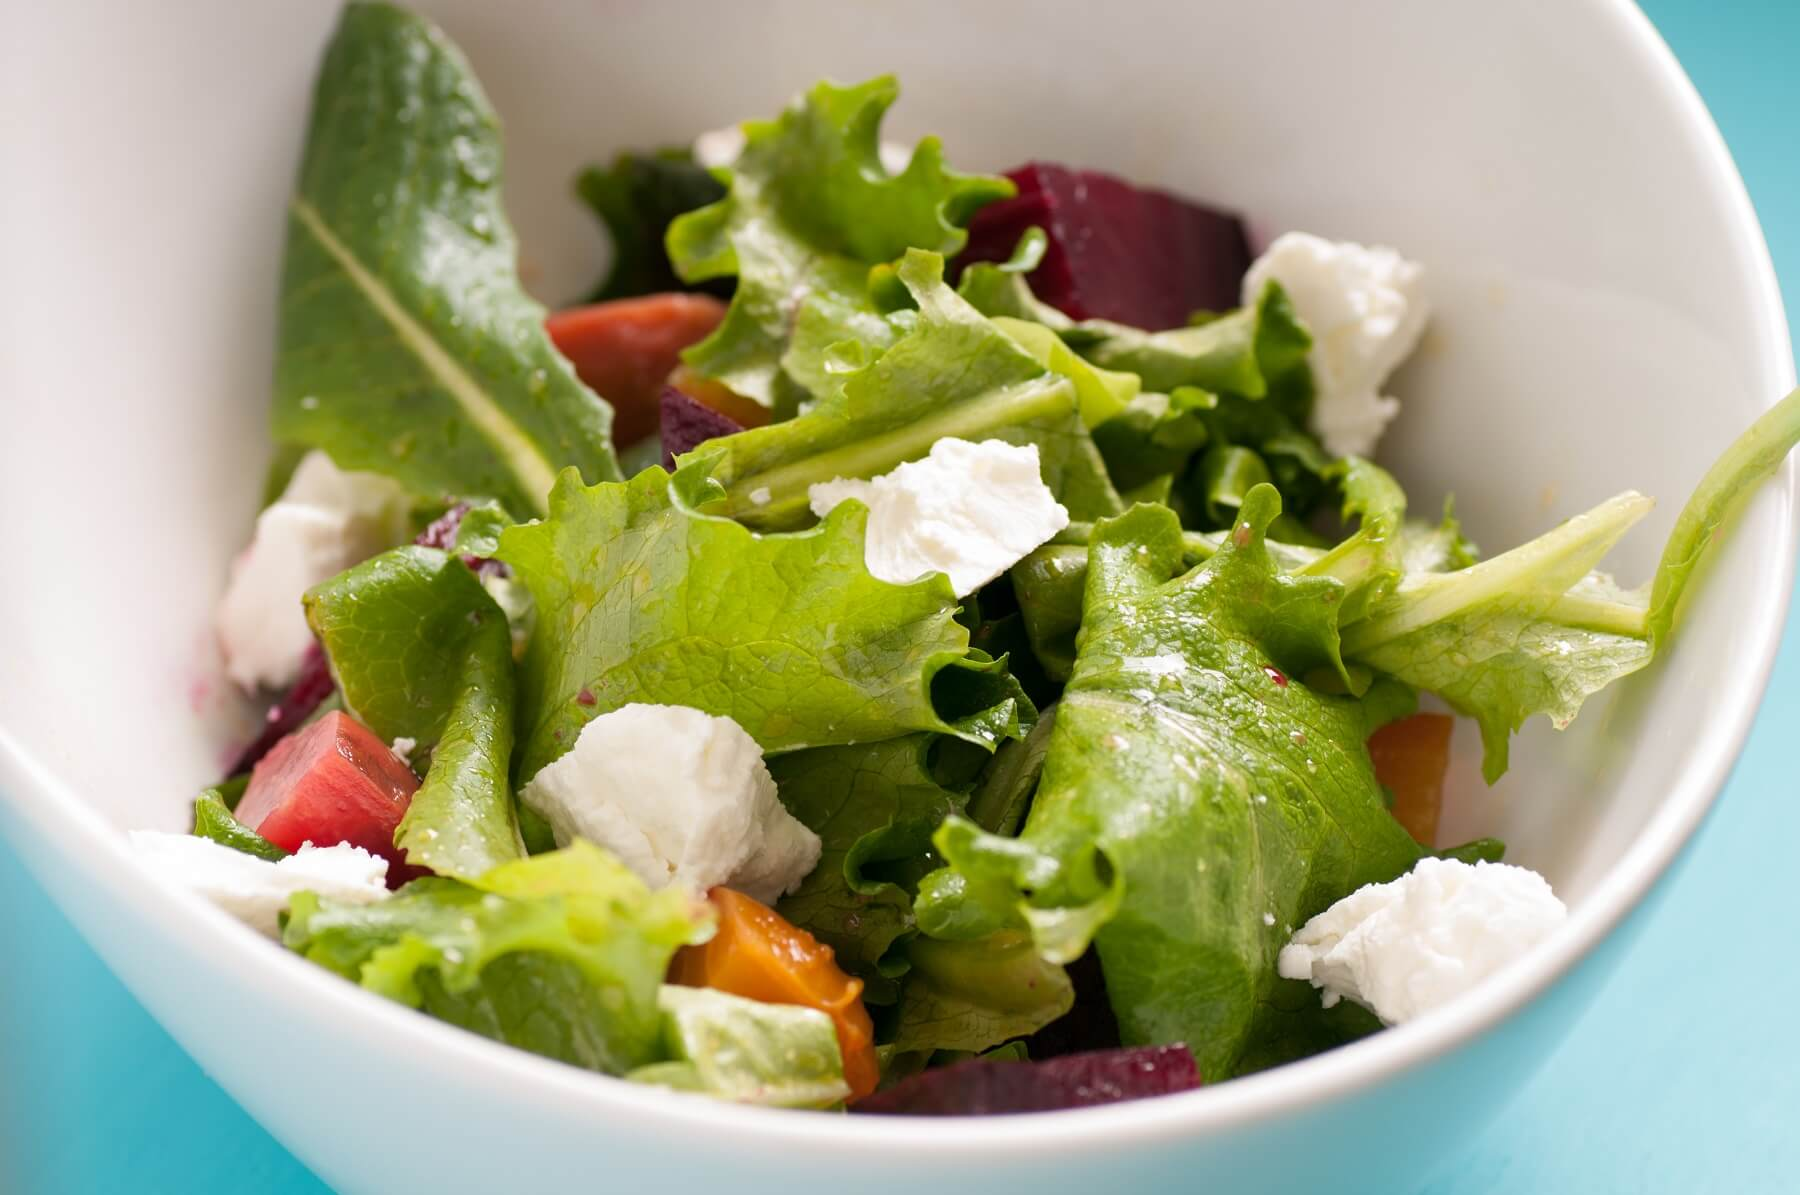 Grilled Lettuce and Goat's Cheese Salad Recipe